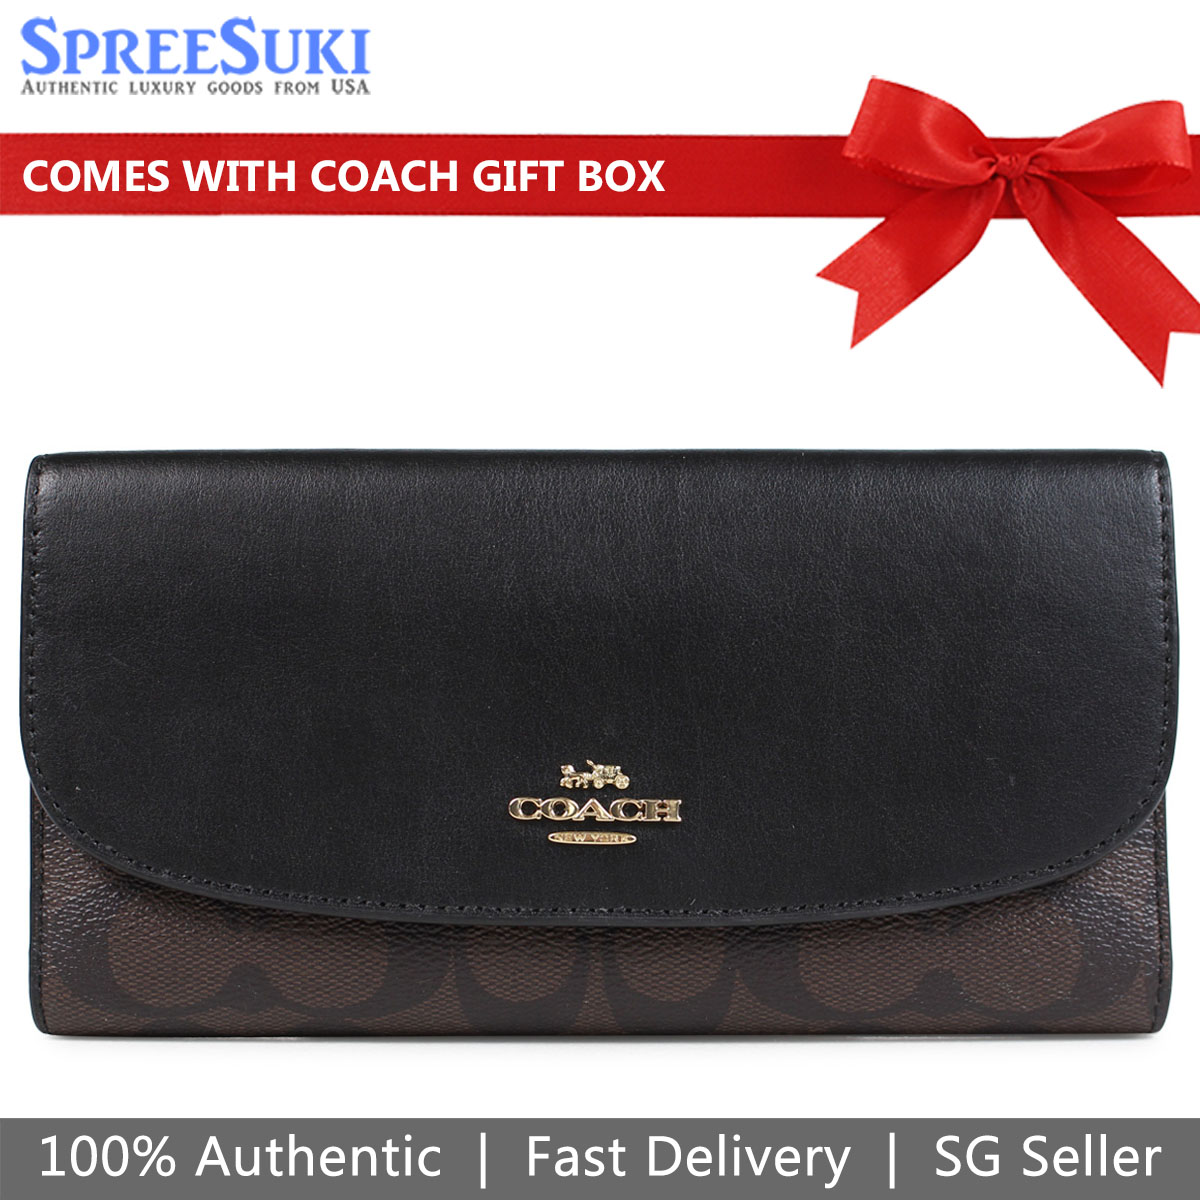 Coach Checkbook Wallet Pvc And Leather Brown Black # F57319